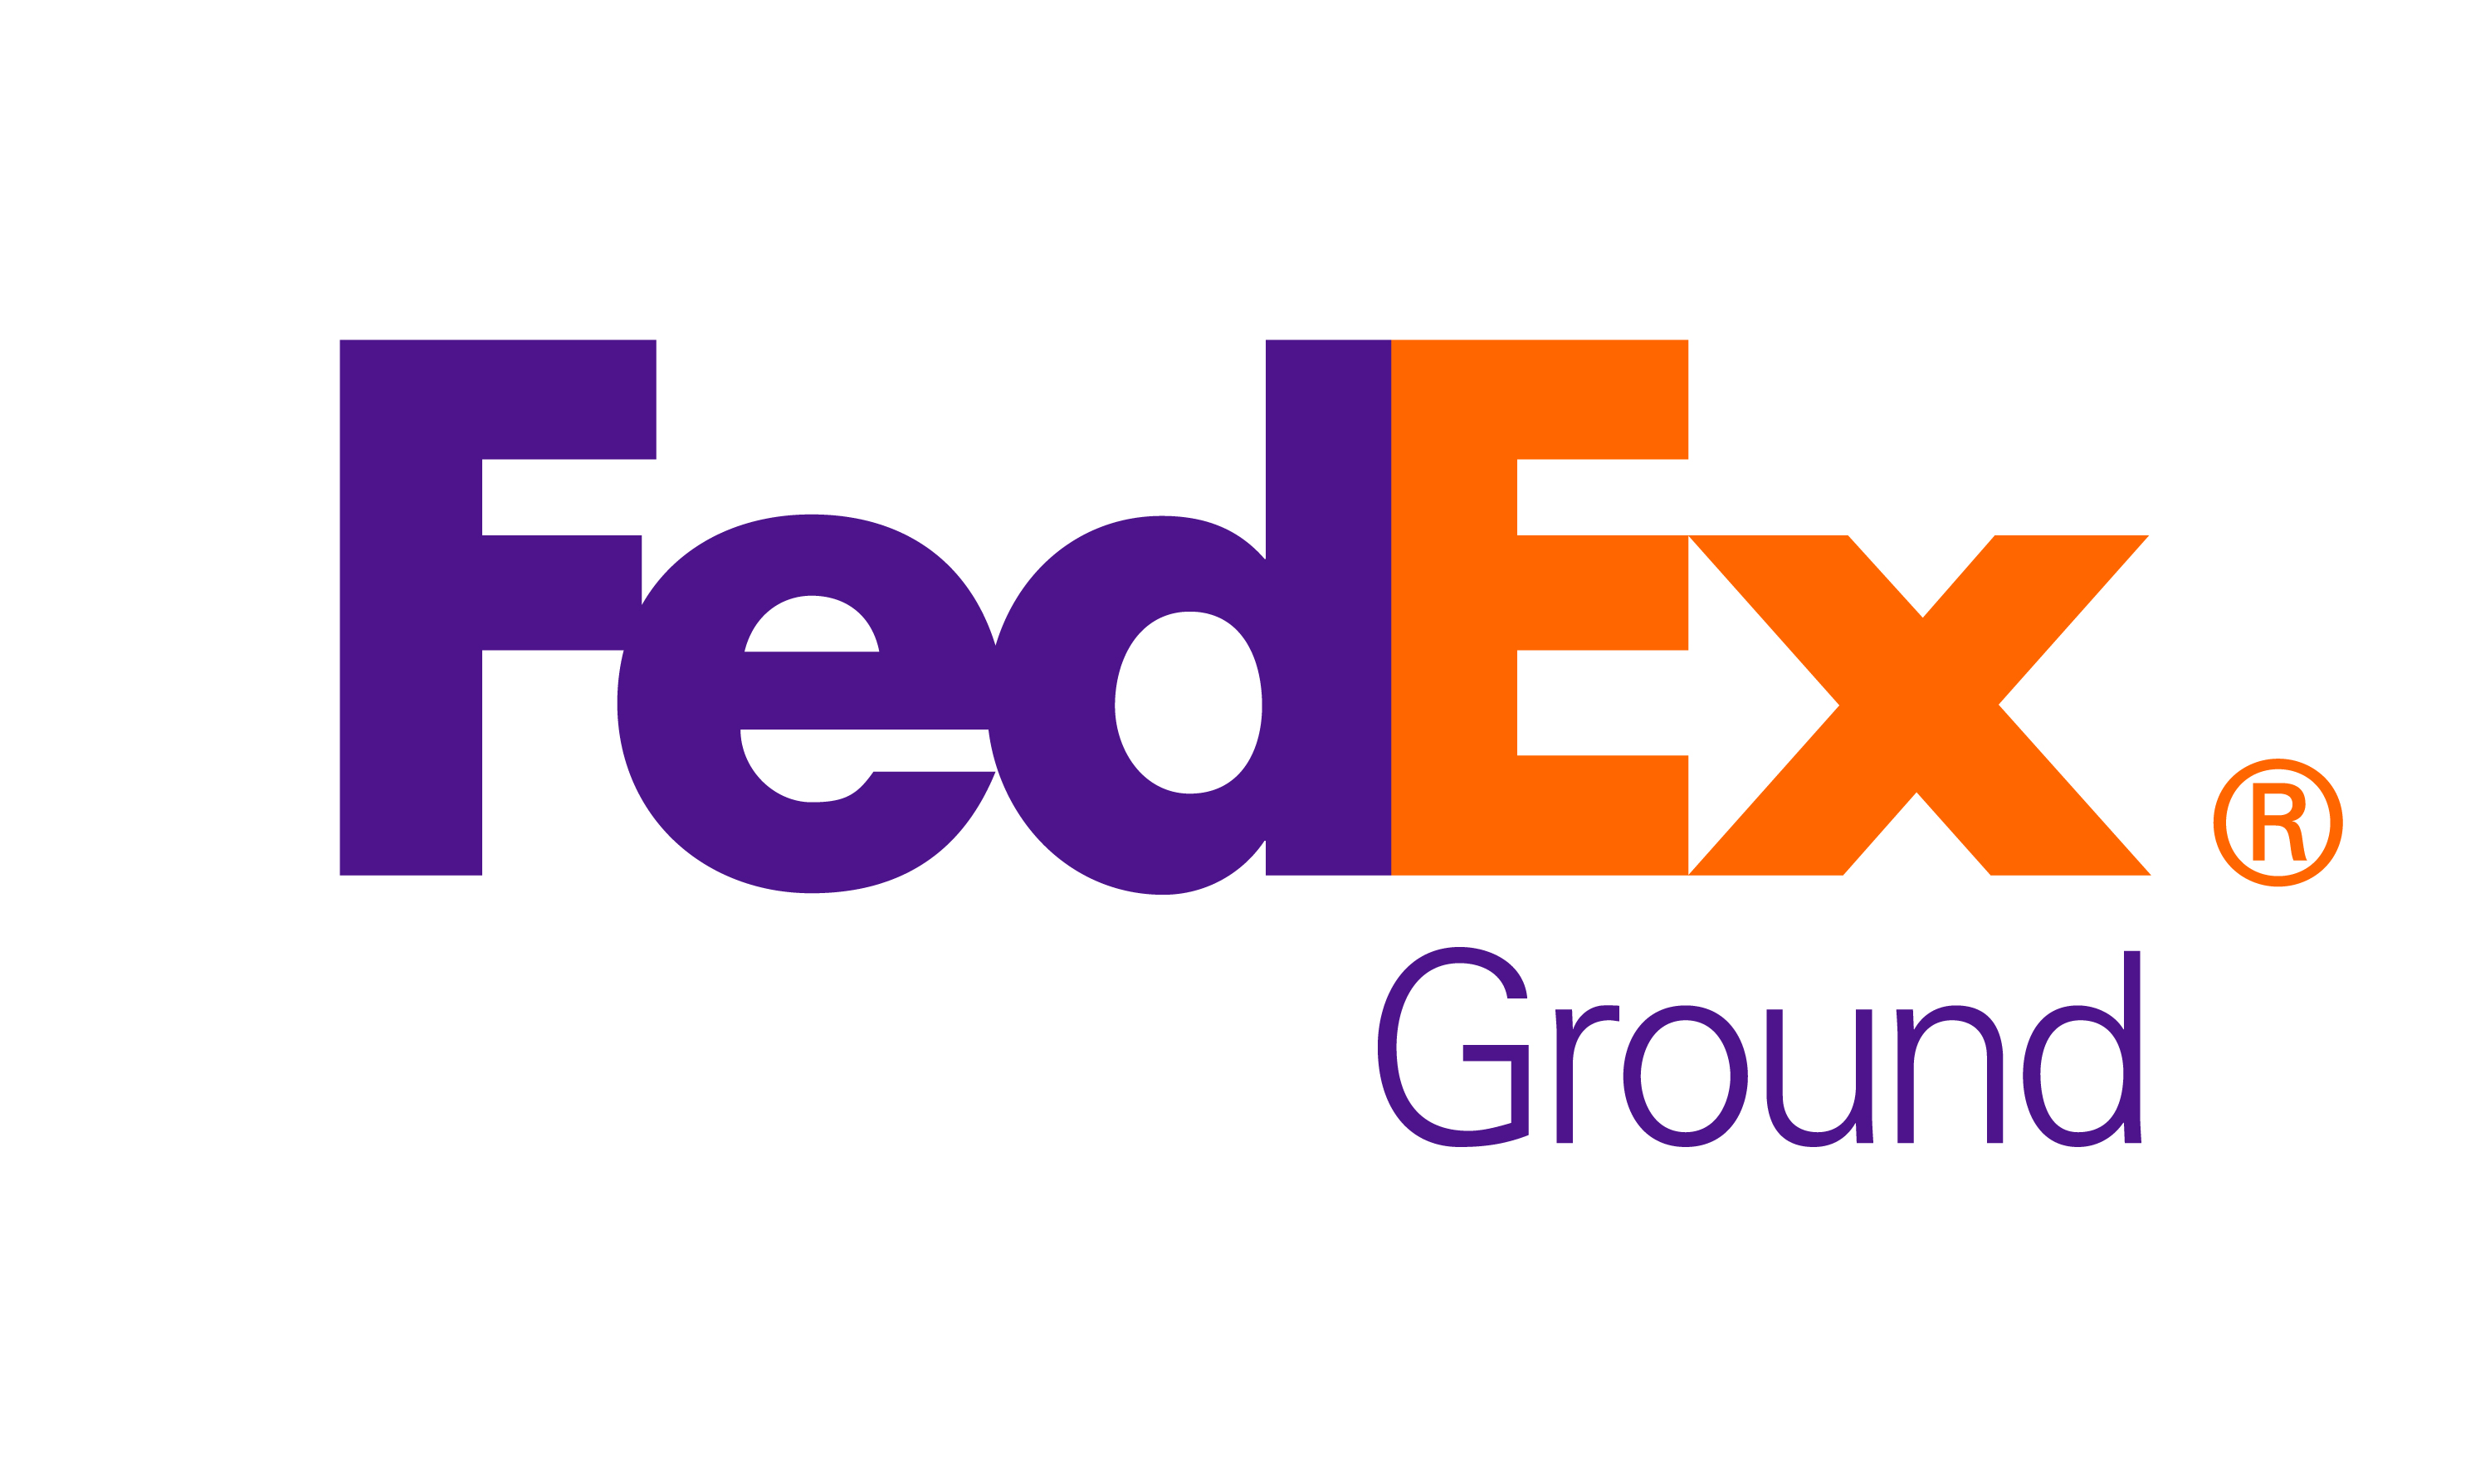 02. FedEx Ground (Chapter Presenting)